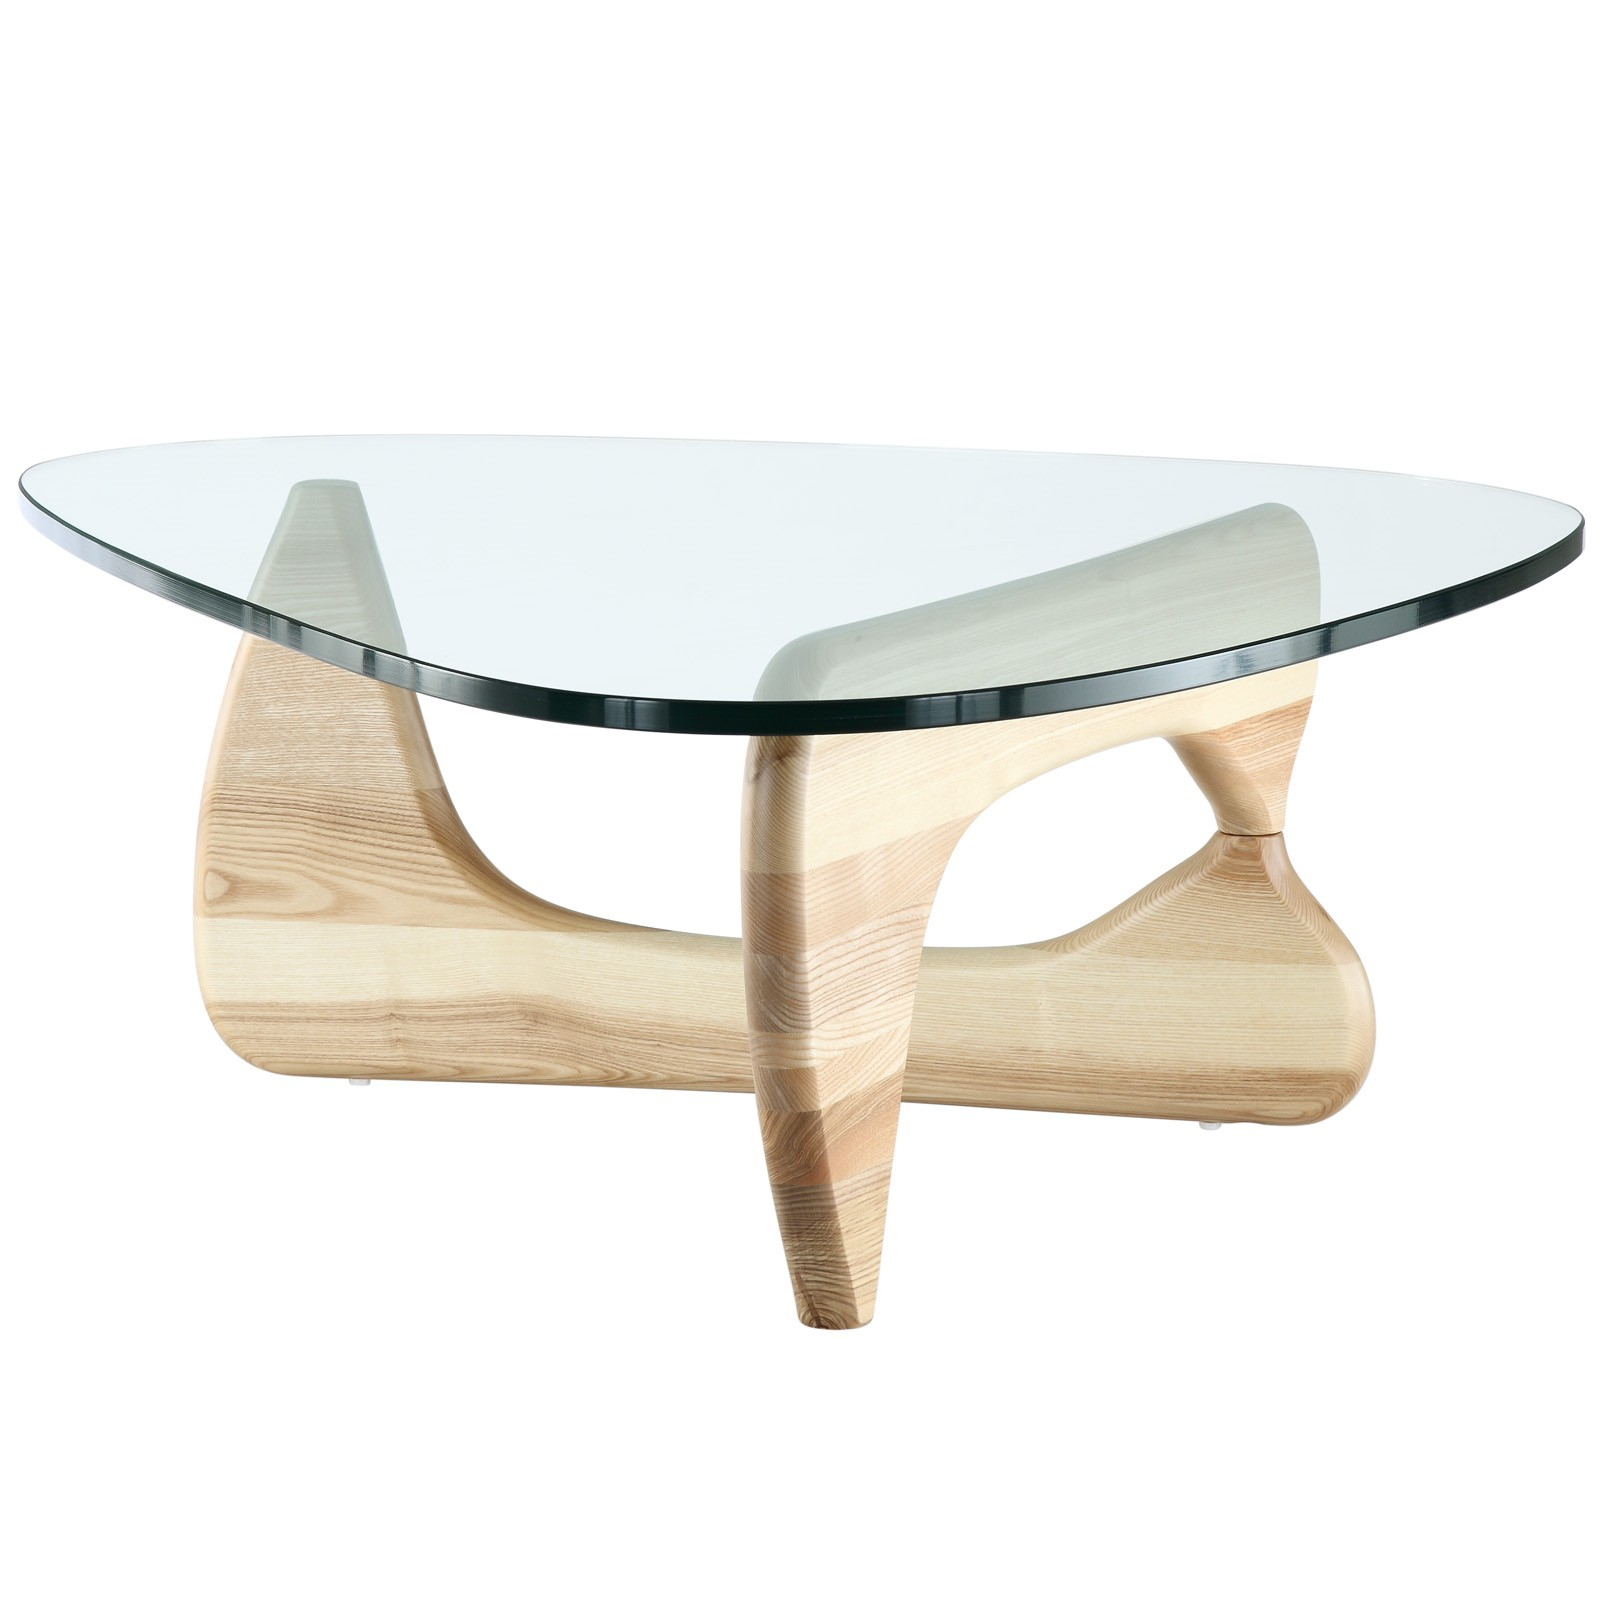 Image of: noguchi coffee table ideas